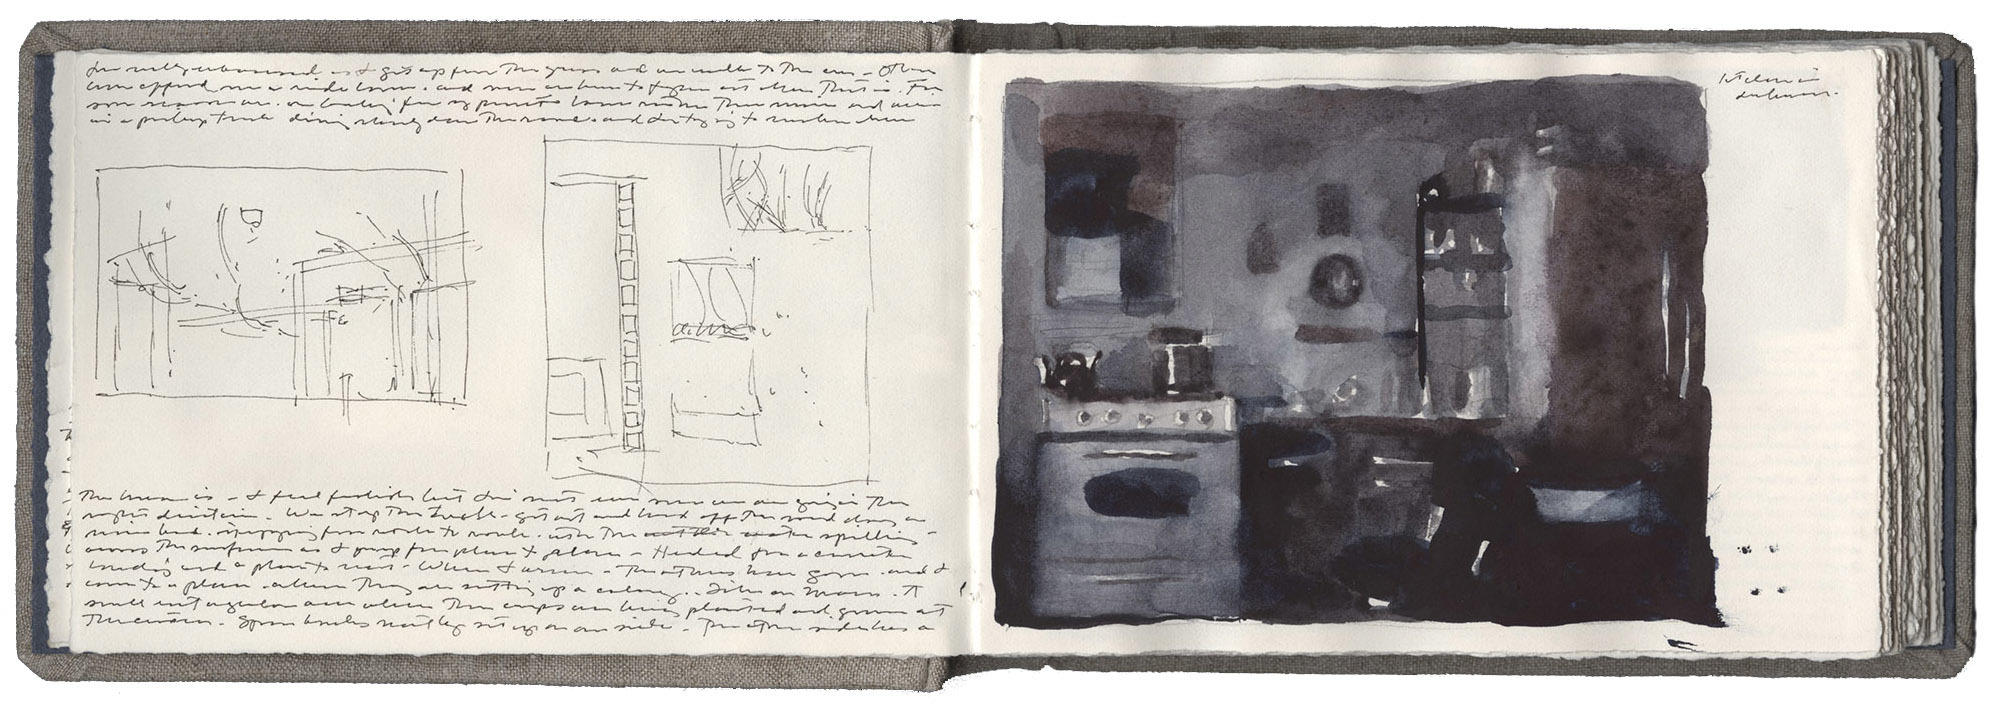 Studies with Kitchen in Darkness image